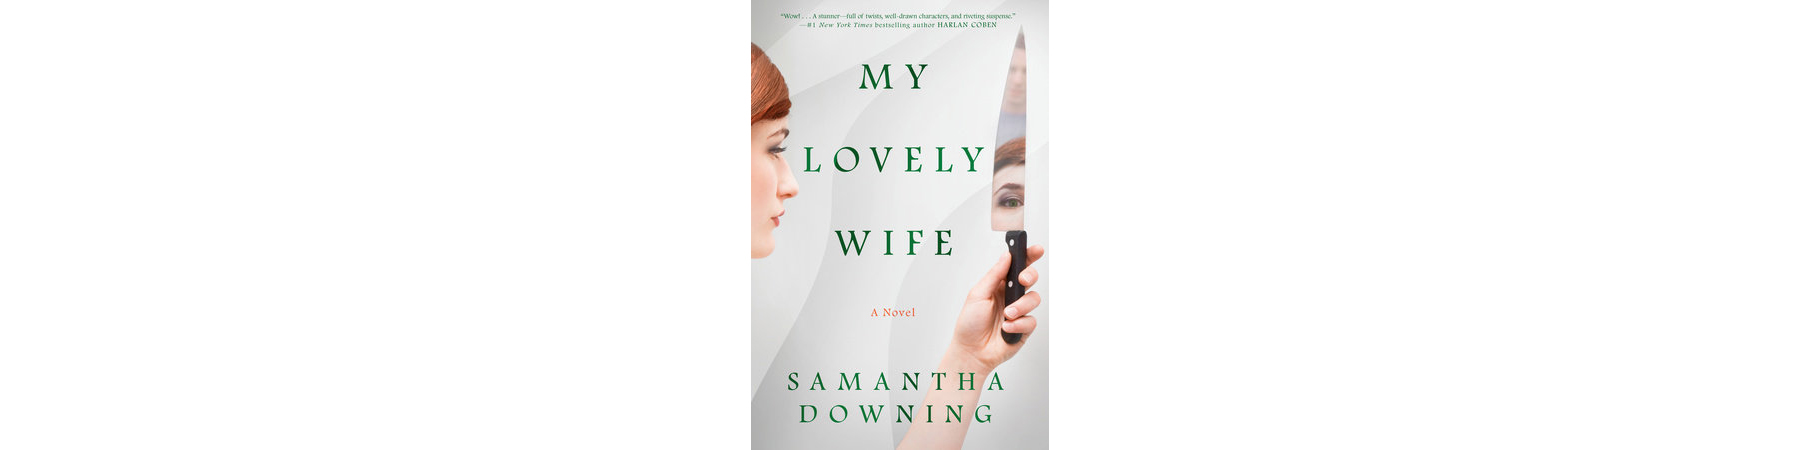 Cover of My Lovely Wife, by Samantha Downing